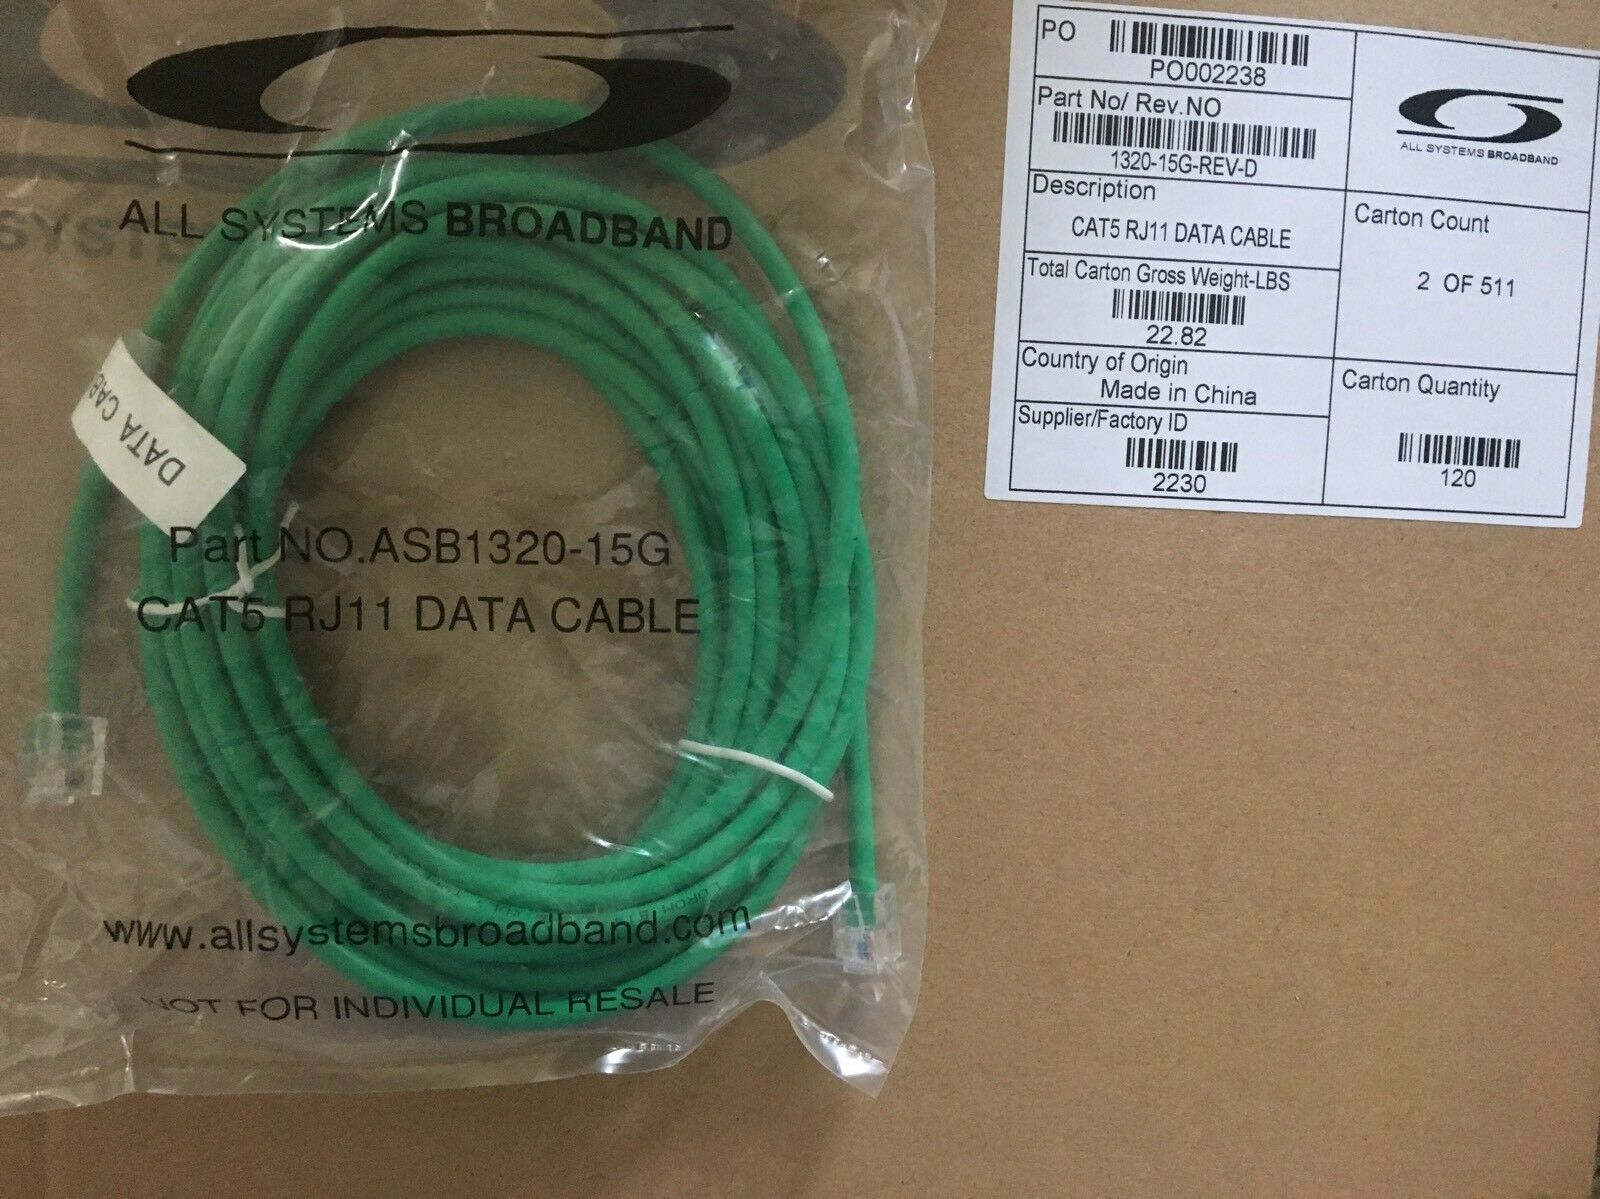 Telephone CAT5 7FT 14FT 15FT RJ11-RJ11 6P4C Data Cable-ALL SYSTEMS BROADBAND